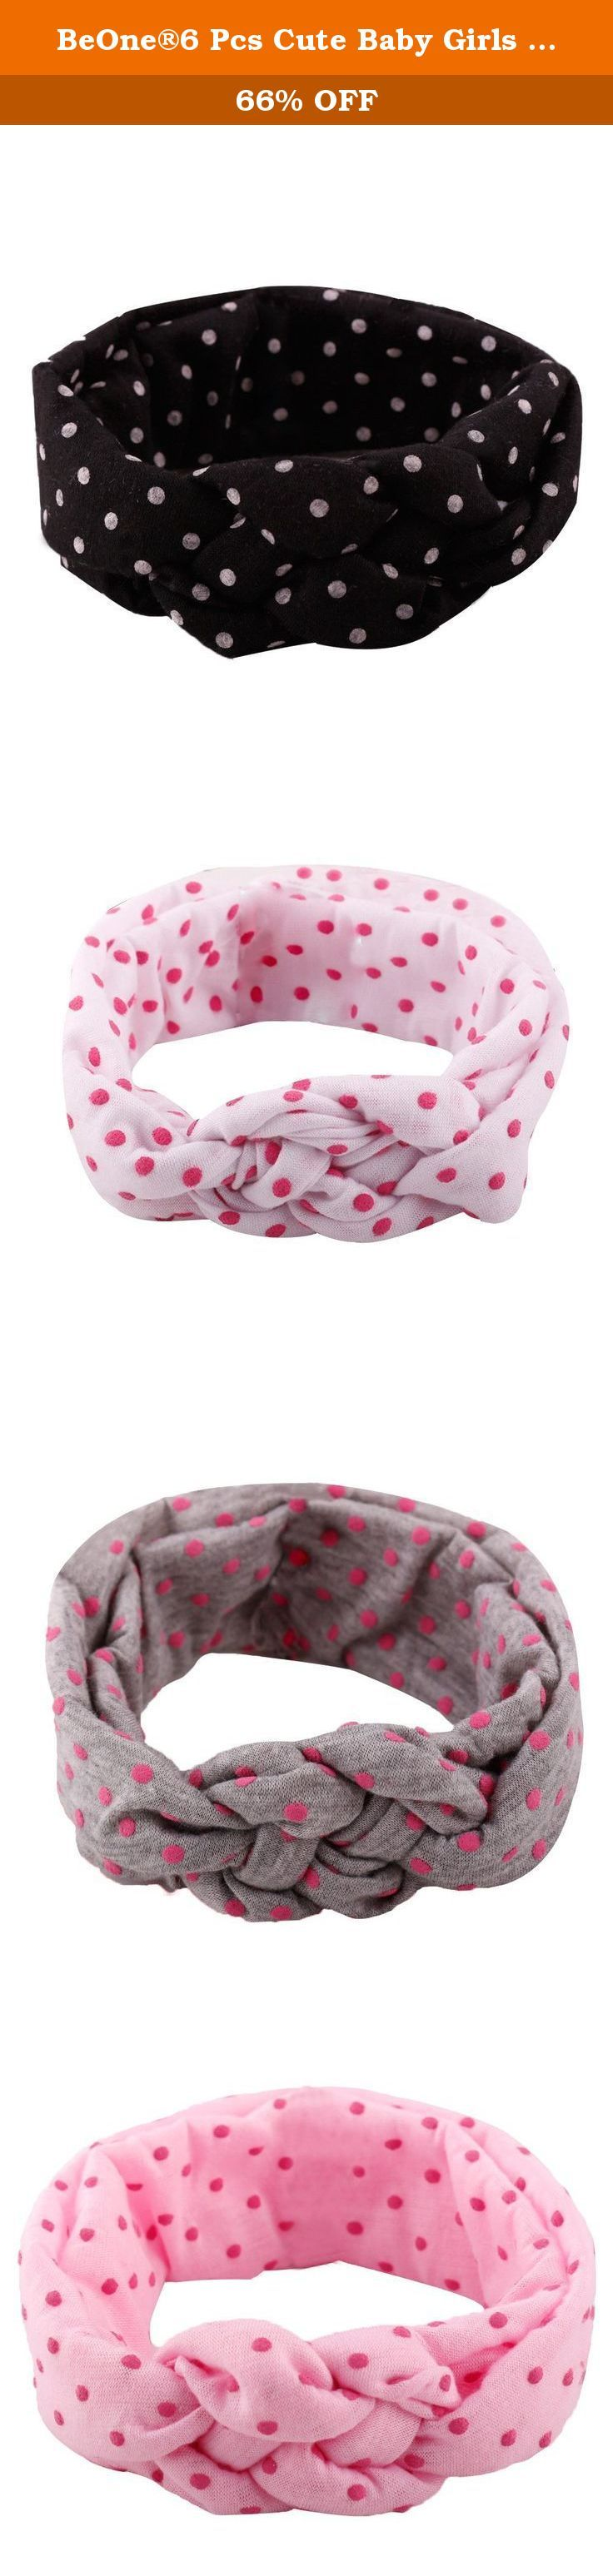 BeOne®6 Pcs Cute Baby Girls Dot Turban Headband Head Wrap Knotted Hair Band Set. Attention please: BeOne is a registered trademark, and is exclusively distributed by BeOne. BeOne trademark is protected by Trademark Law. All rights reserved. Delivery Time: The estimated delivery time will be 10-15 business days to arrive in USA and there is no any extra cost,please ignore the Amazon delivery time,it is just default time of the Amazon. Feedback: Your satisfaction and positive feedback is…